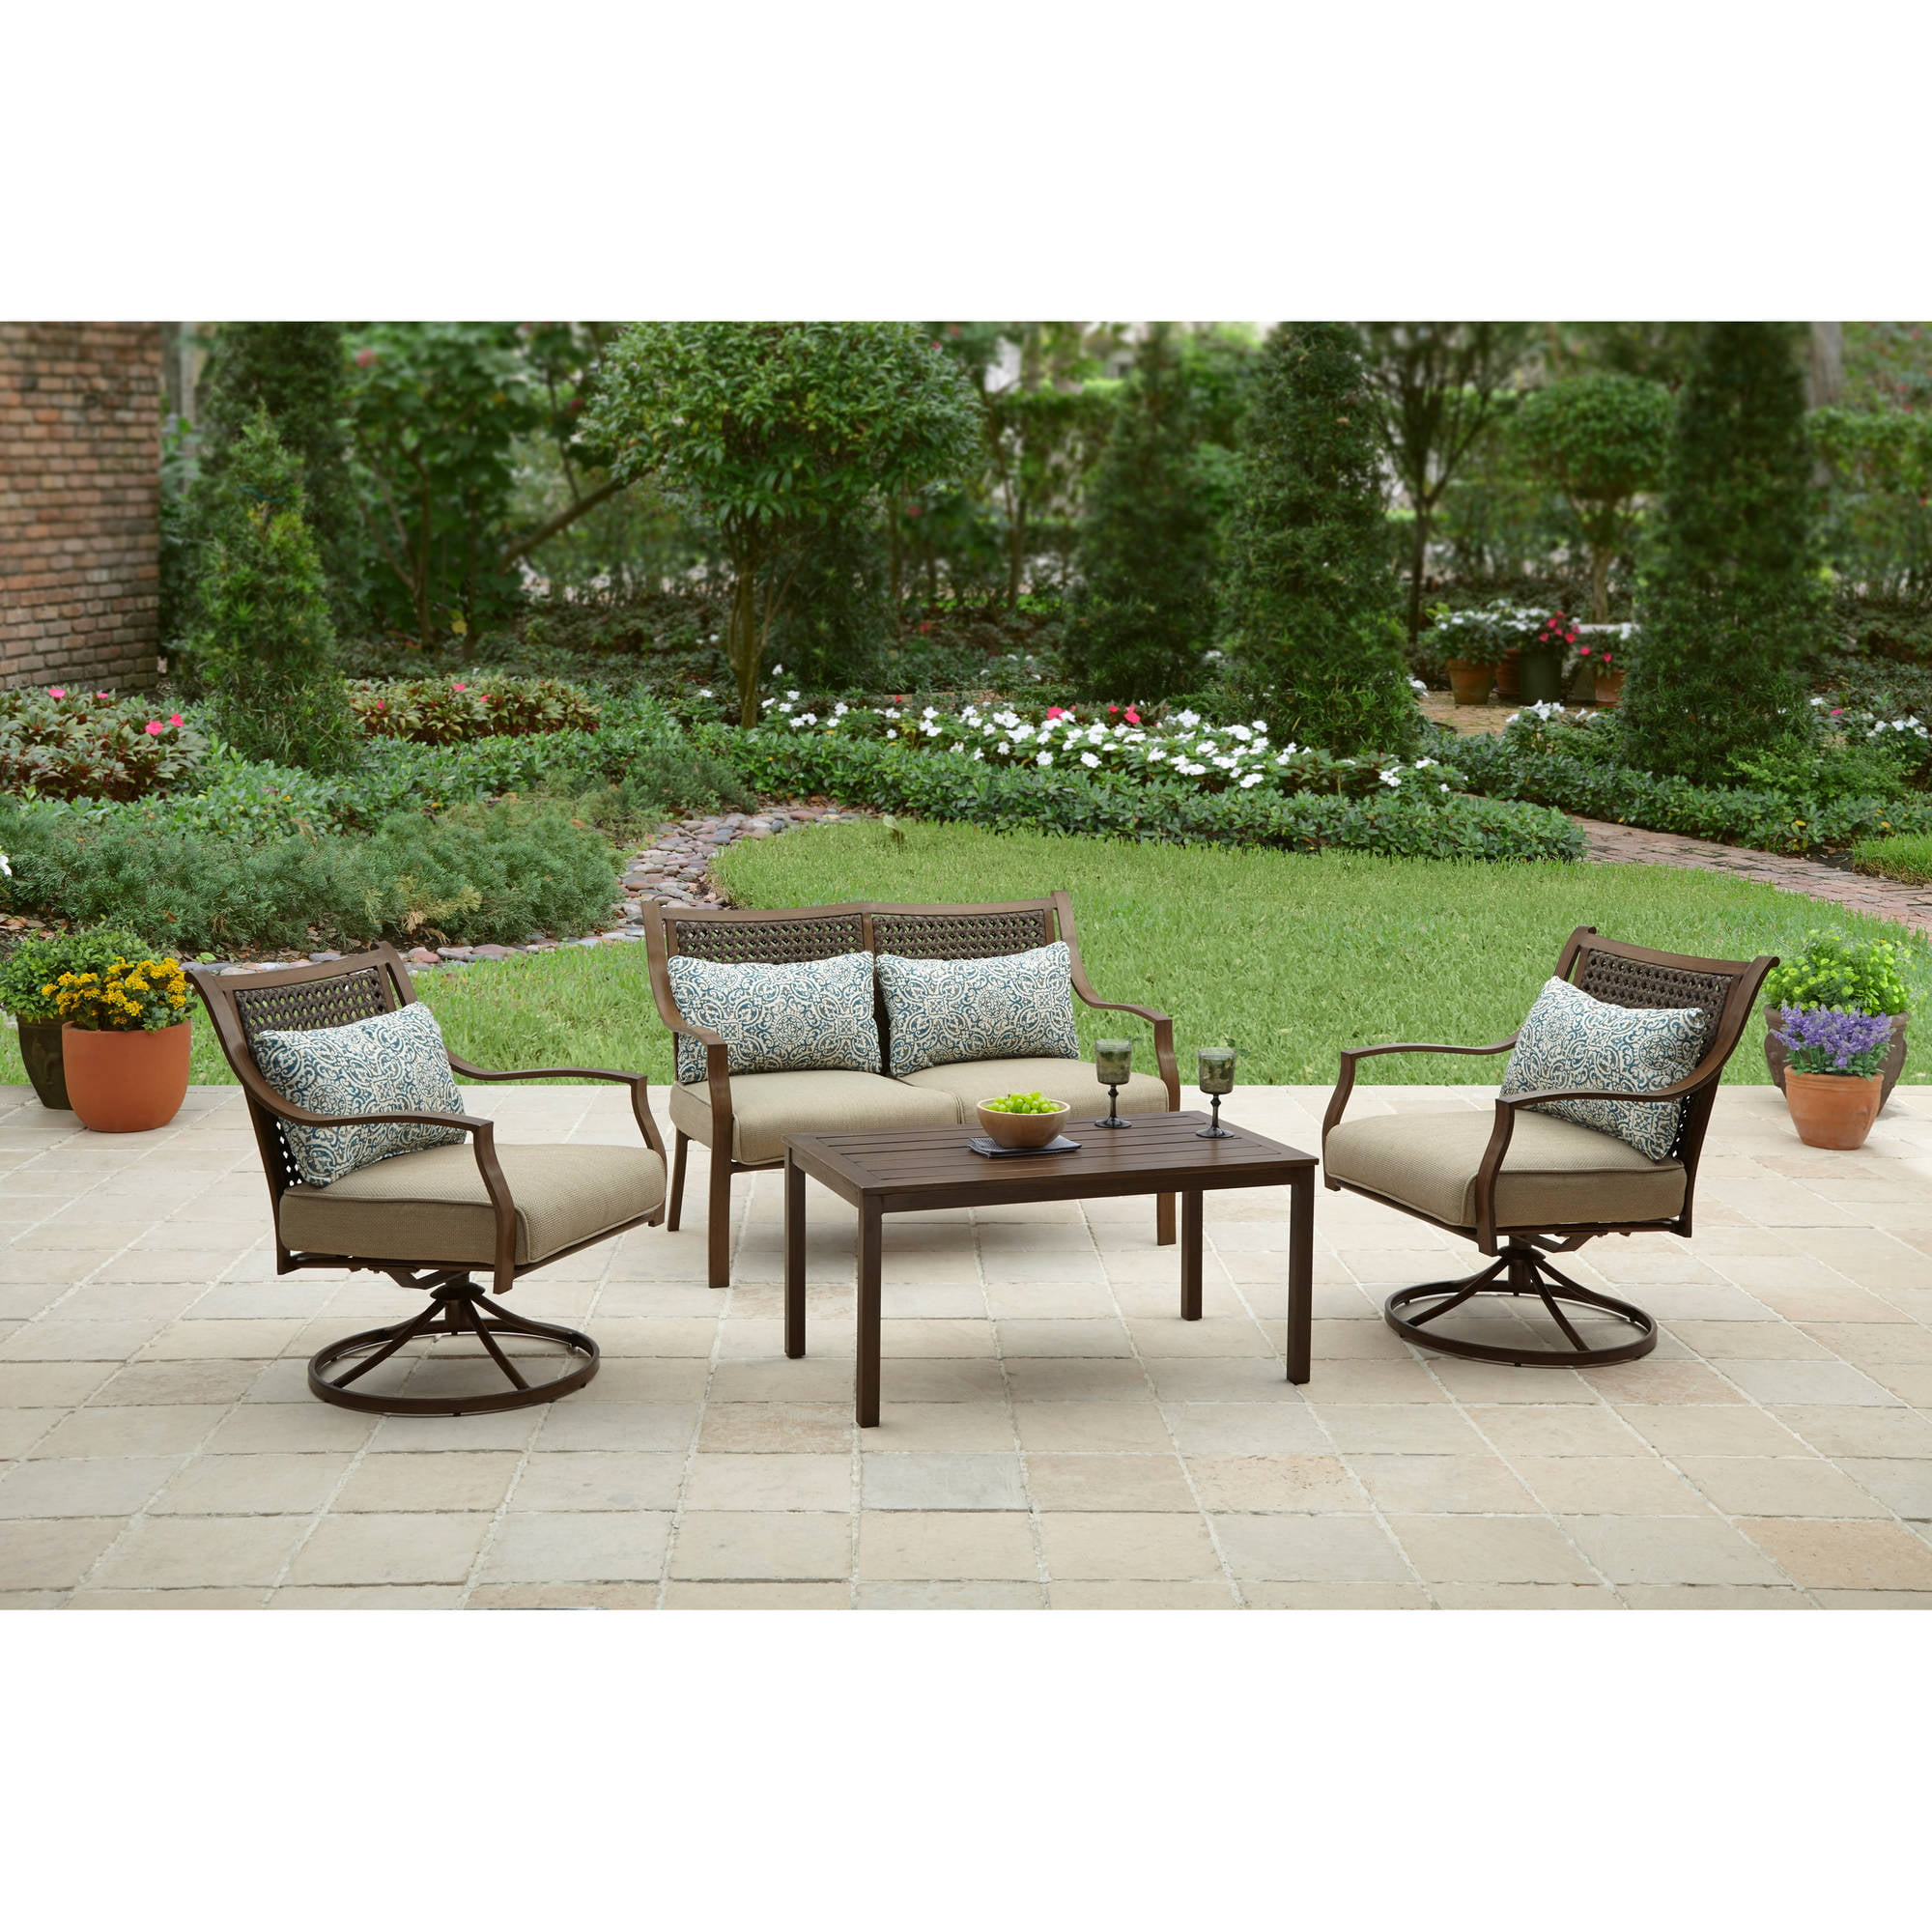 Better Homes And Gardens Lynnhaven Park 4 Piece Outdoor Conversation Set    Walmart.com